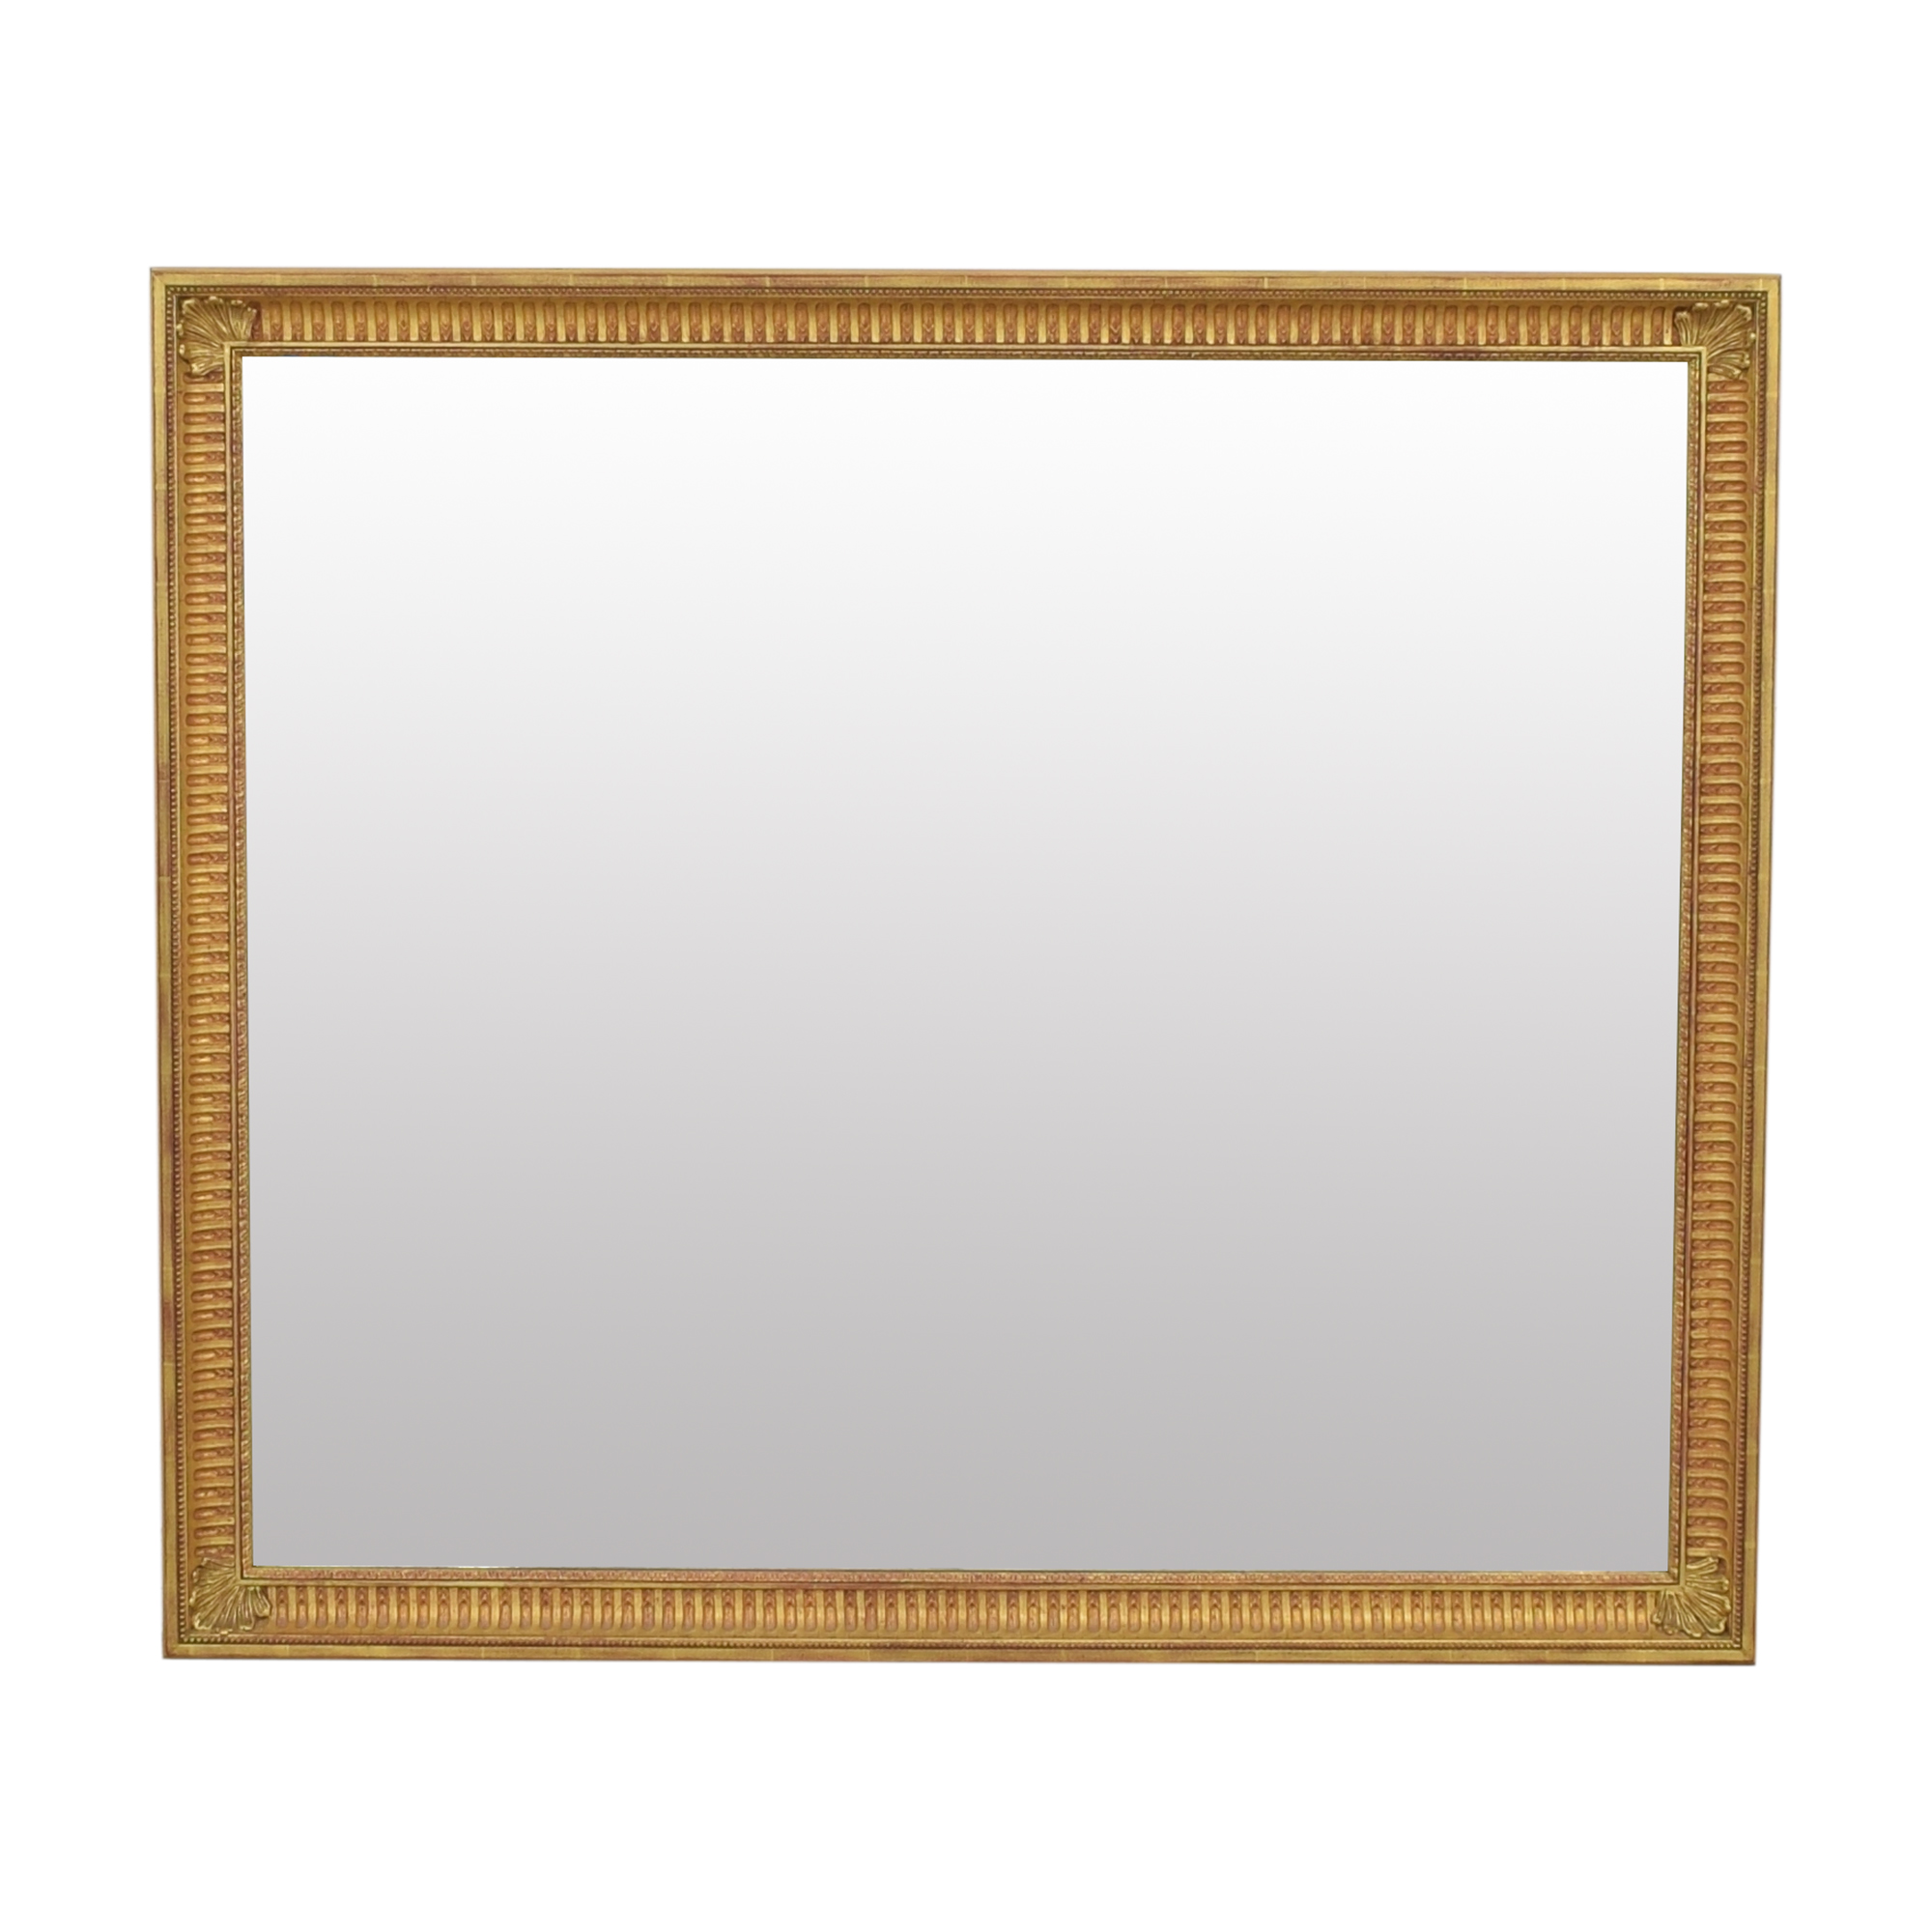 Framed Decorative Wall Mirror on sale